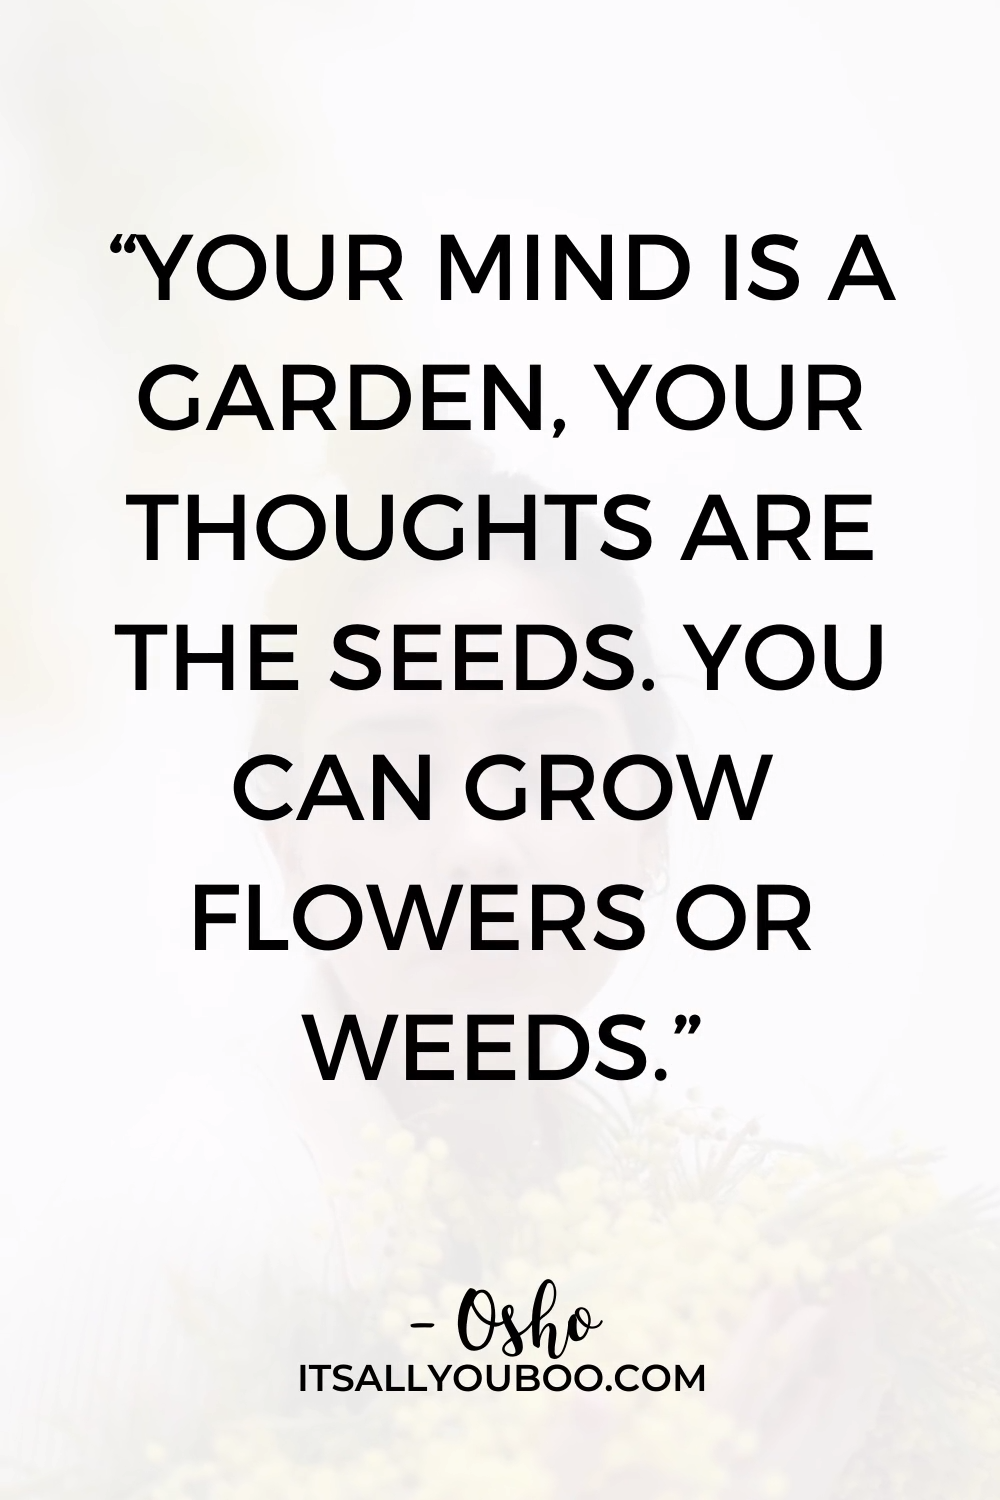 What Are You Growing?